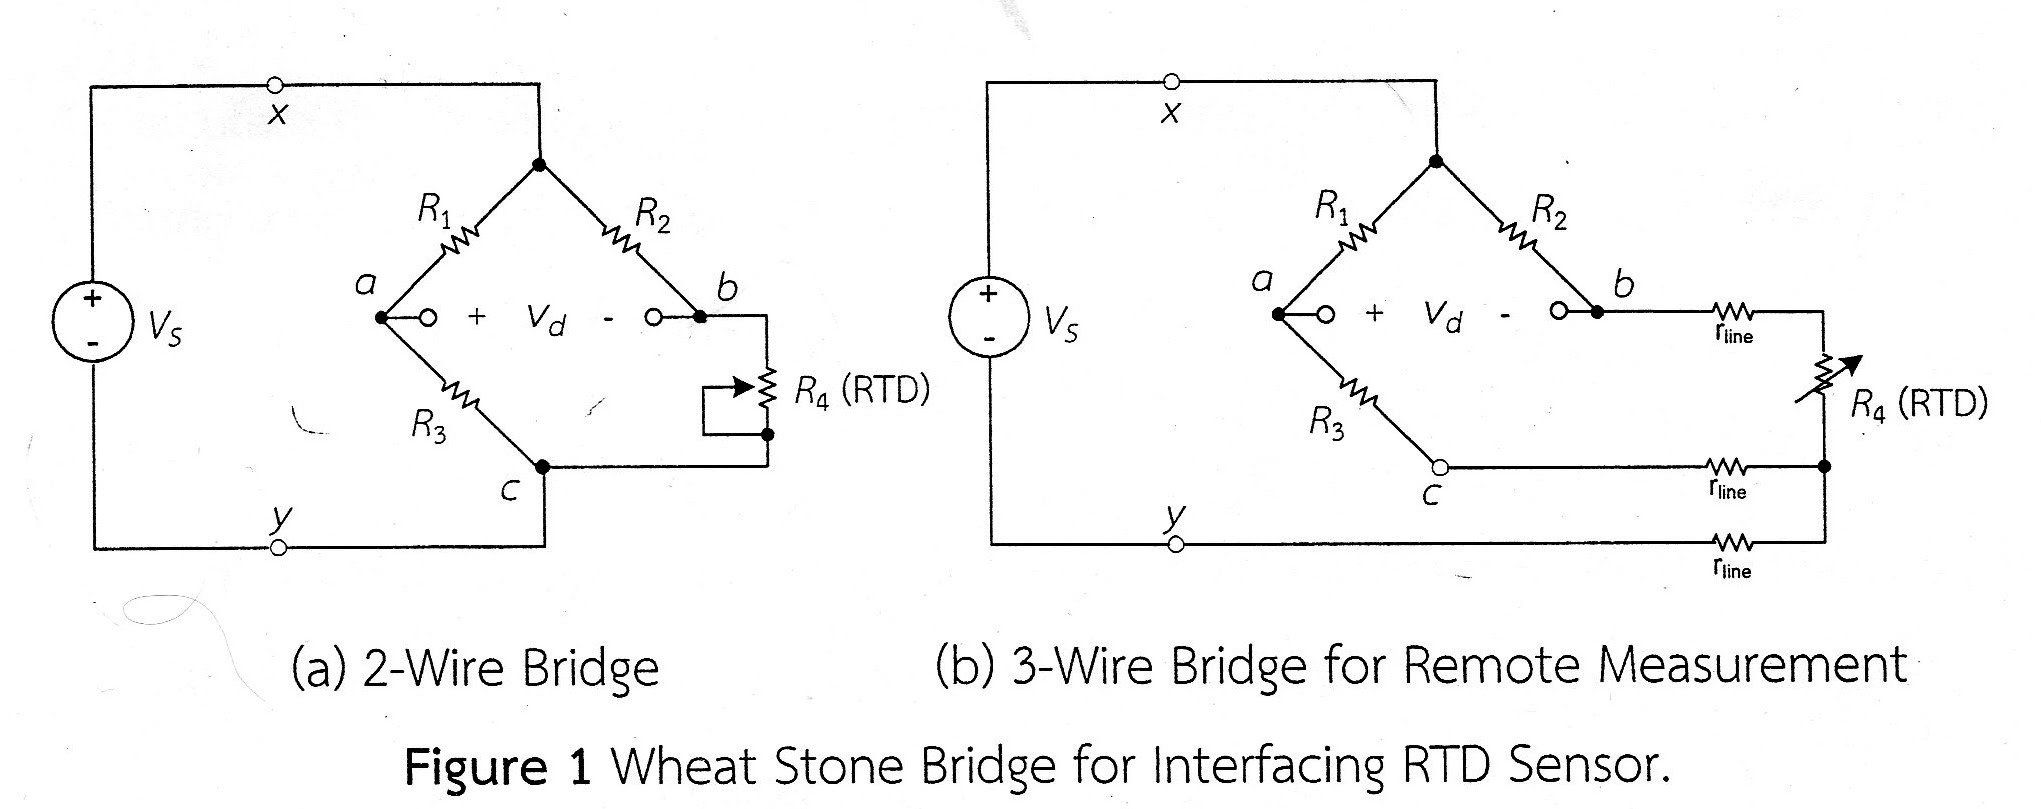 Marvelous Labiv Op Amp Signal Conditioning Circuit For 3 Wire Rtd Bridge Wiring Digital Resources Bemuashebarightsorg